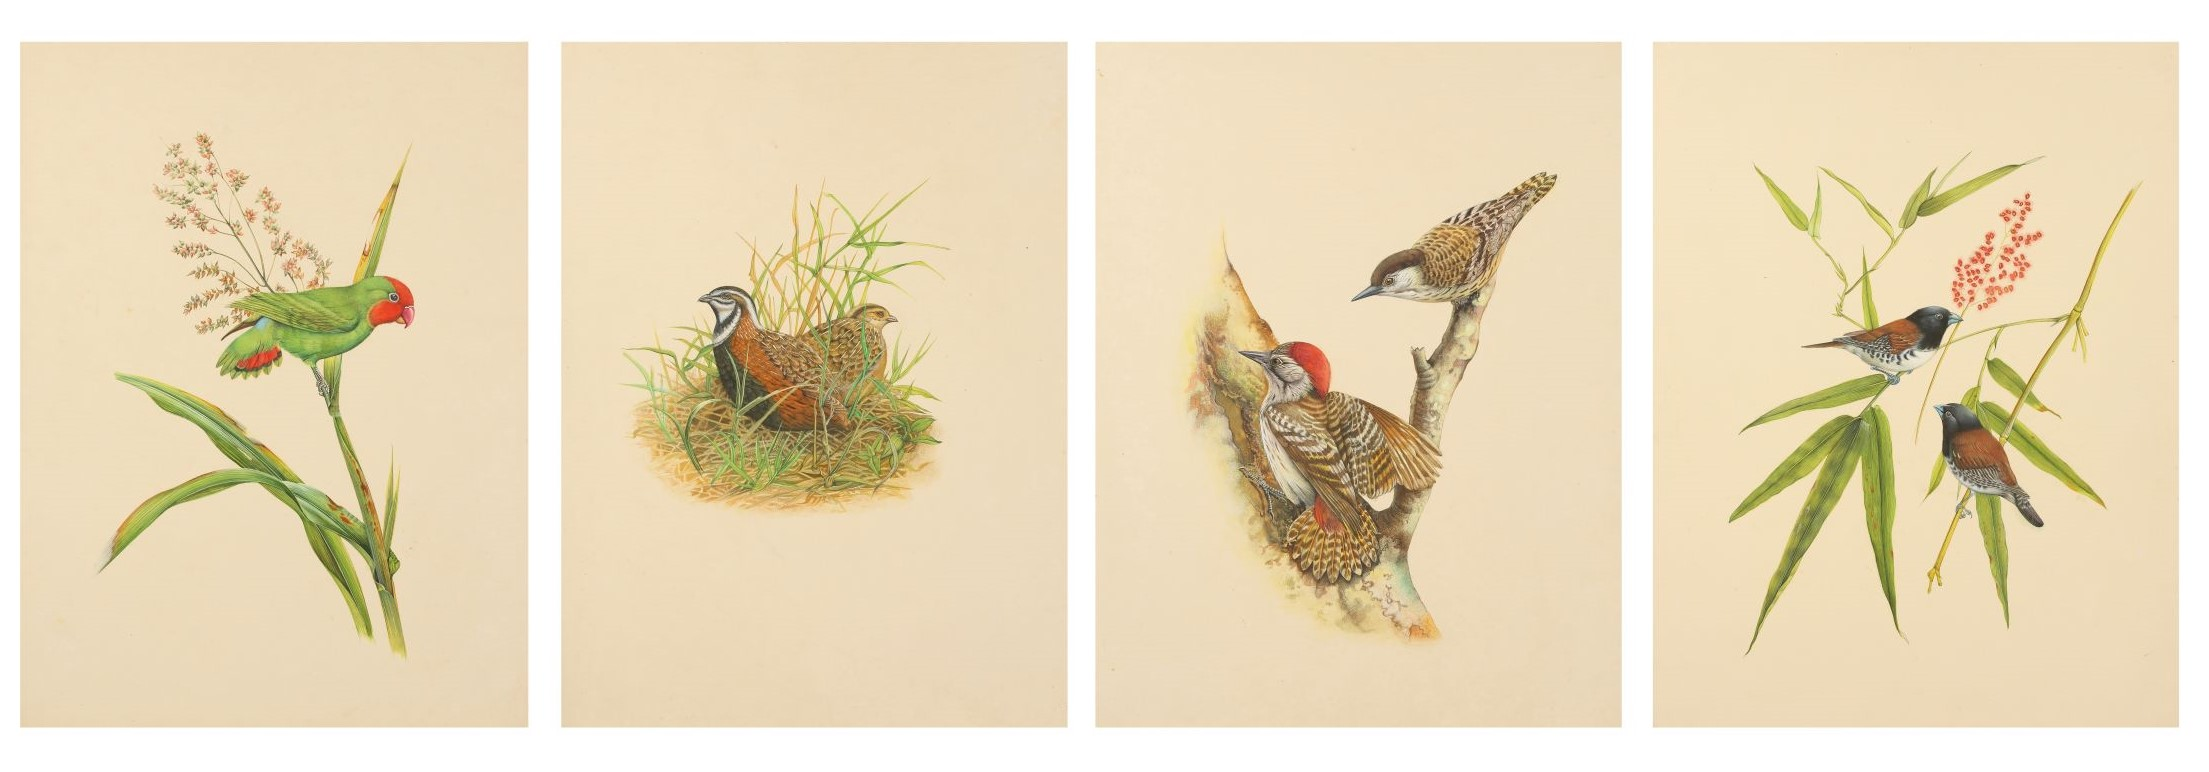 Lot 326. Four studies of birds in their natural habitat